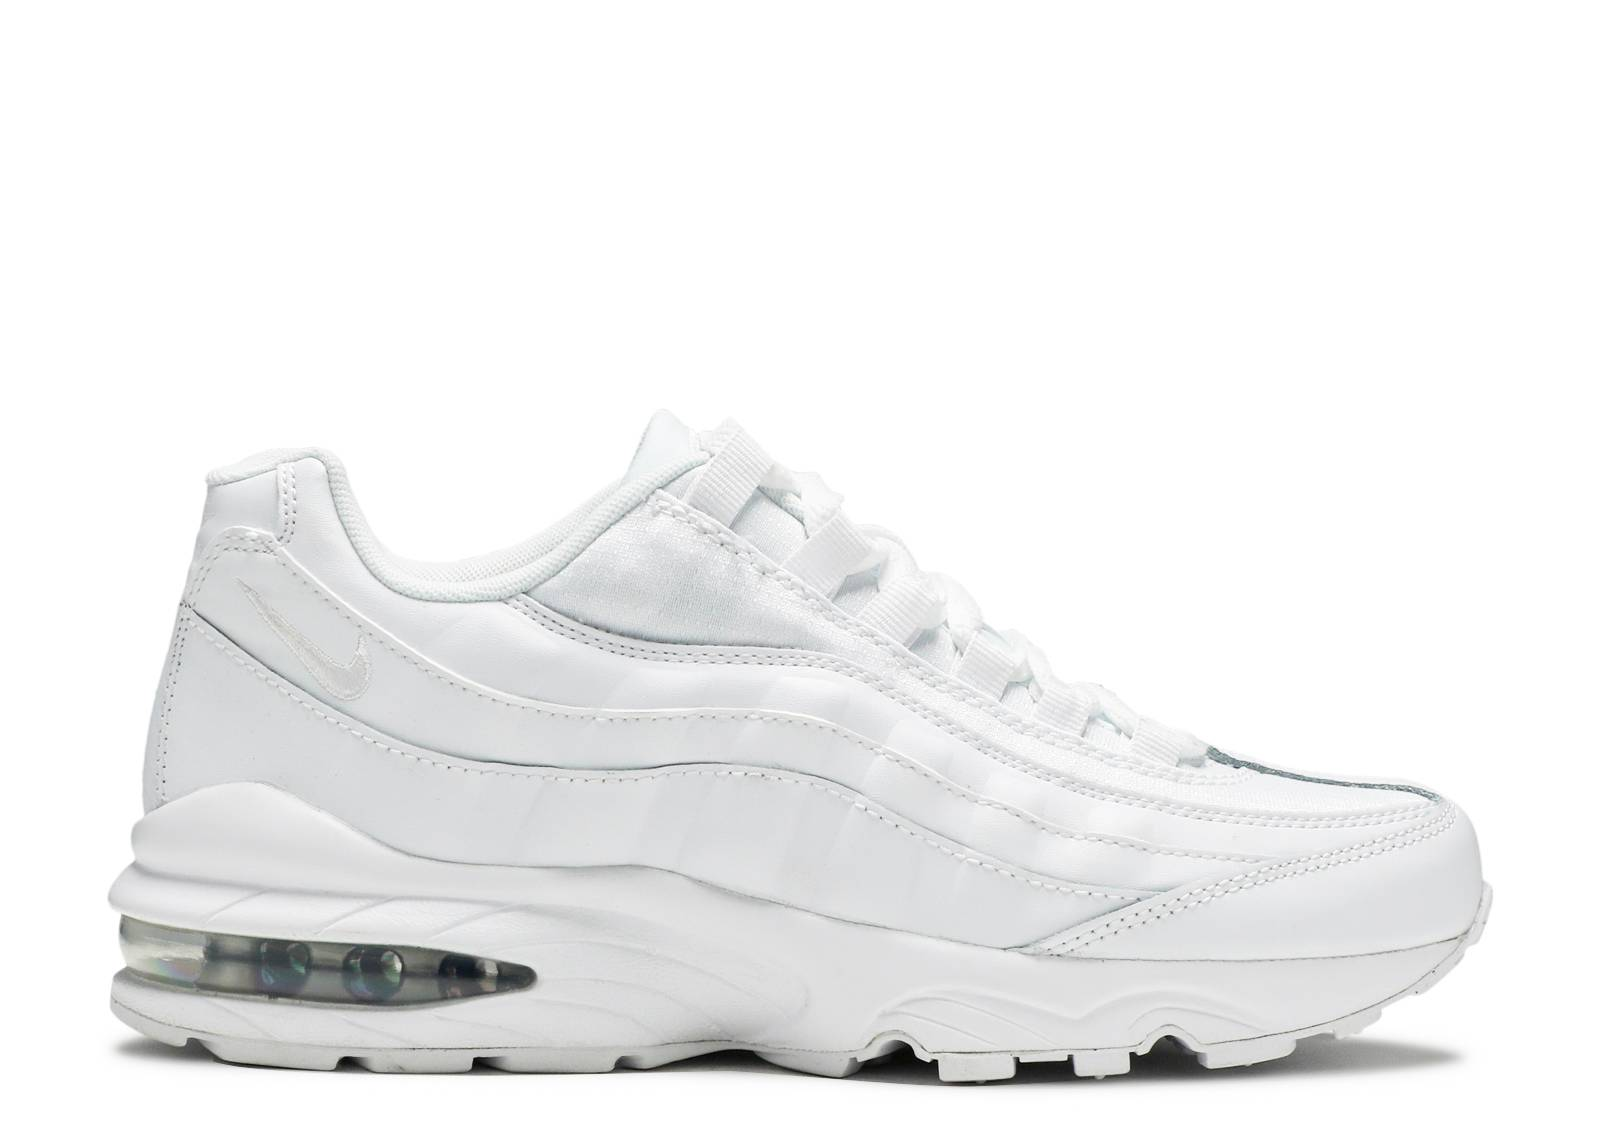 Basket Nike Air Max More White Metallic Silver (1) | Nike